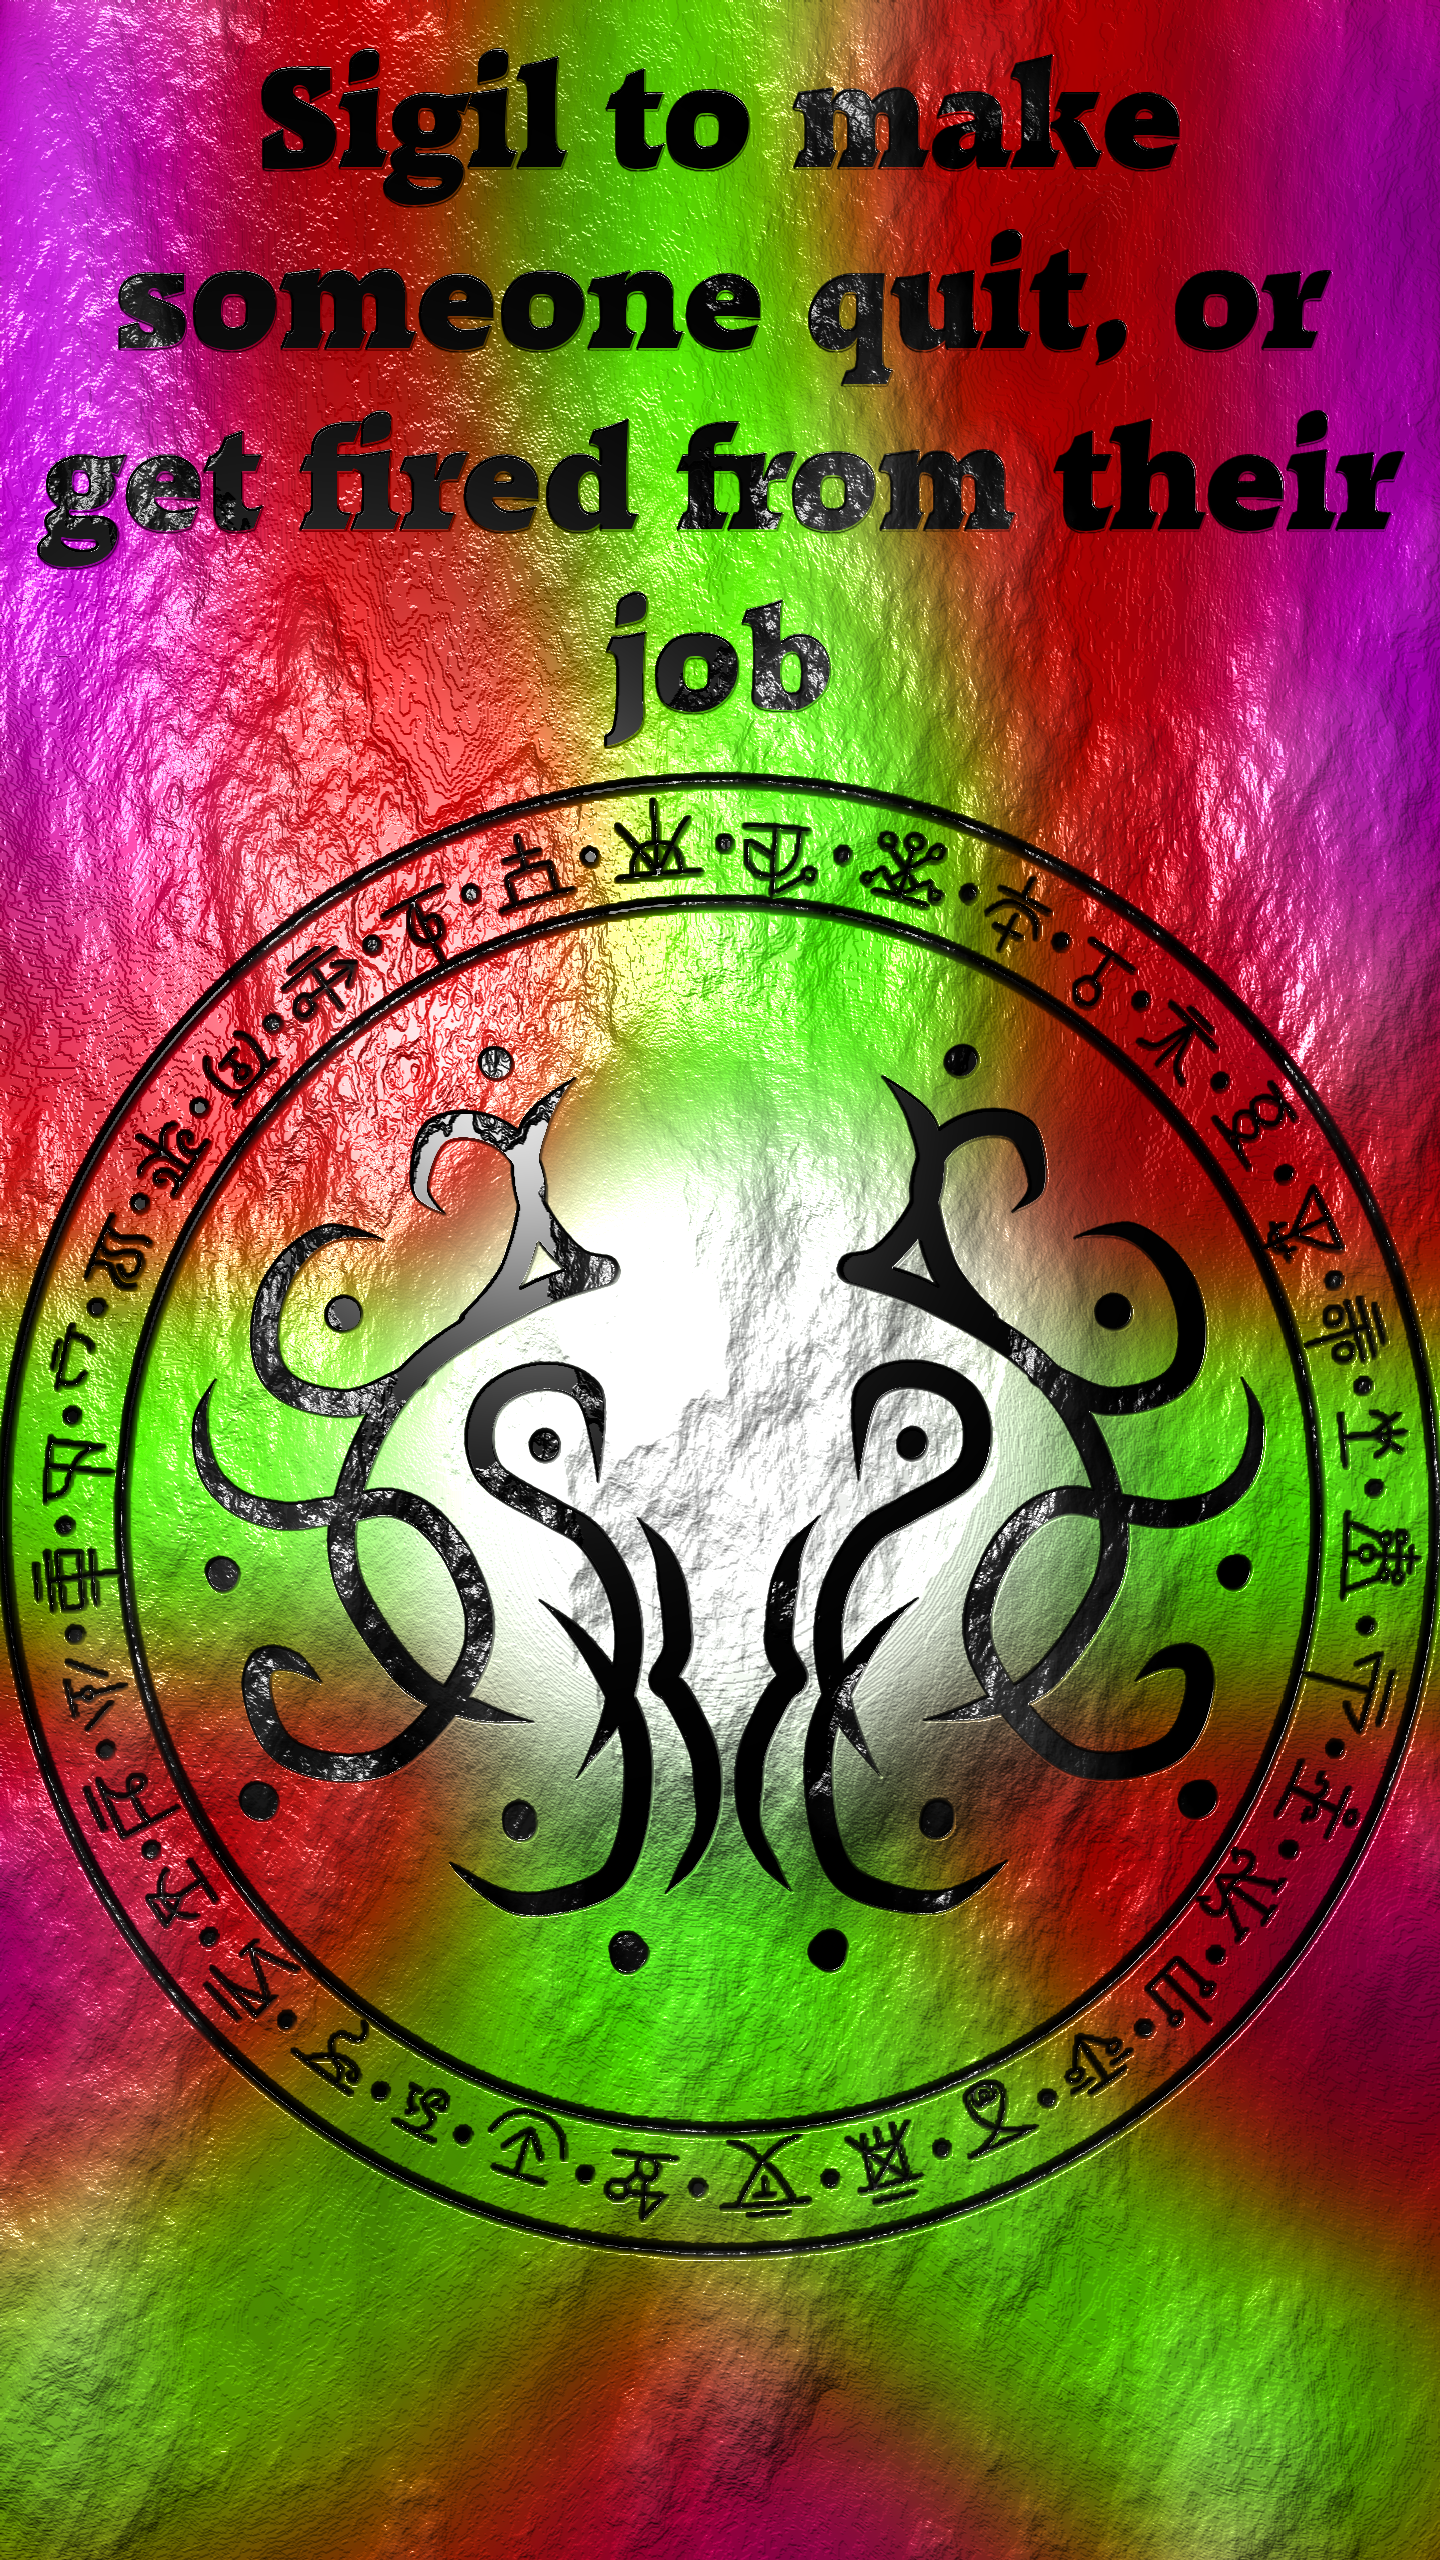 Sigil To Make Someone Quit Or Get Fired From Their Job In 2020 Sigil Wiccan Symbols Occult